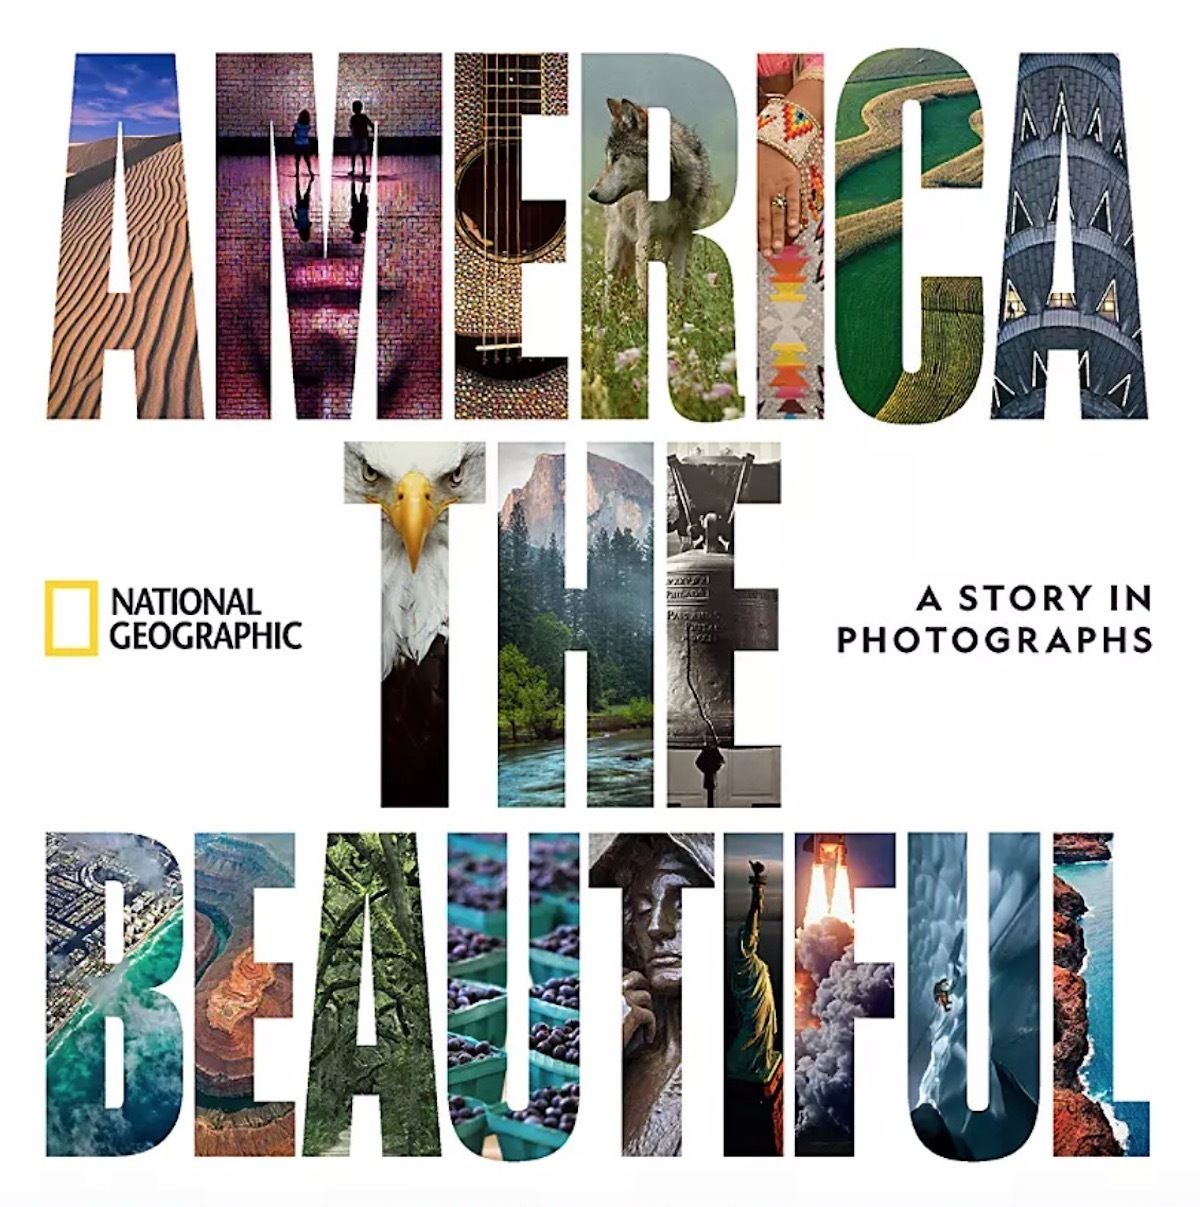 American the beautiful A story in photographs